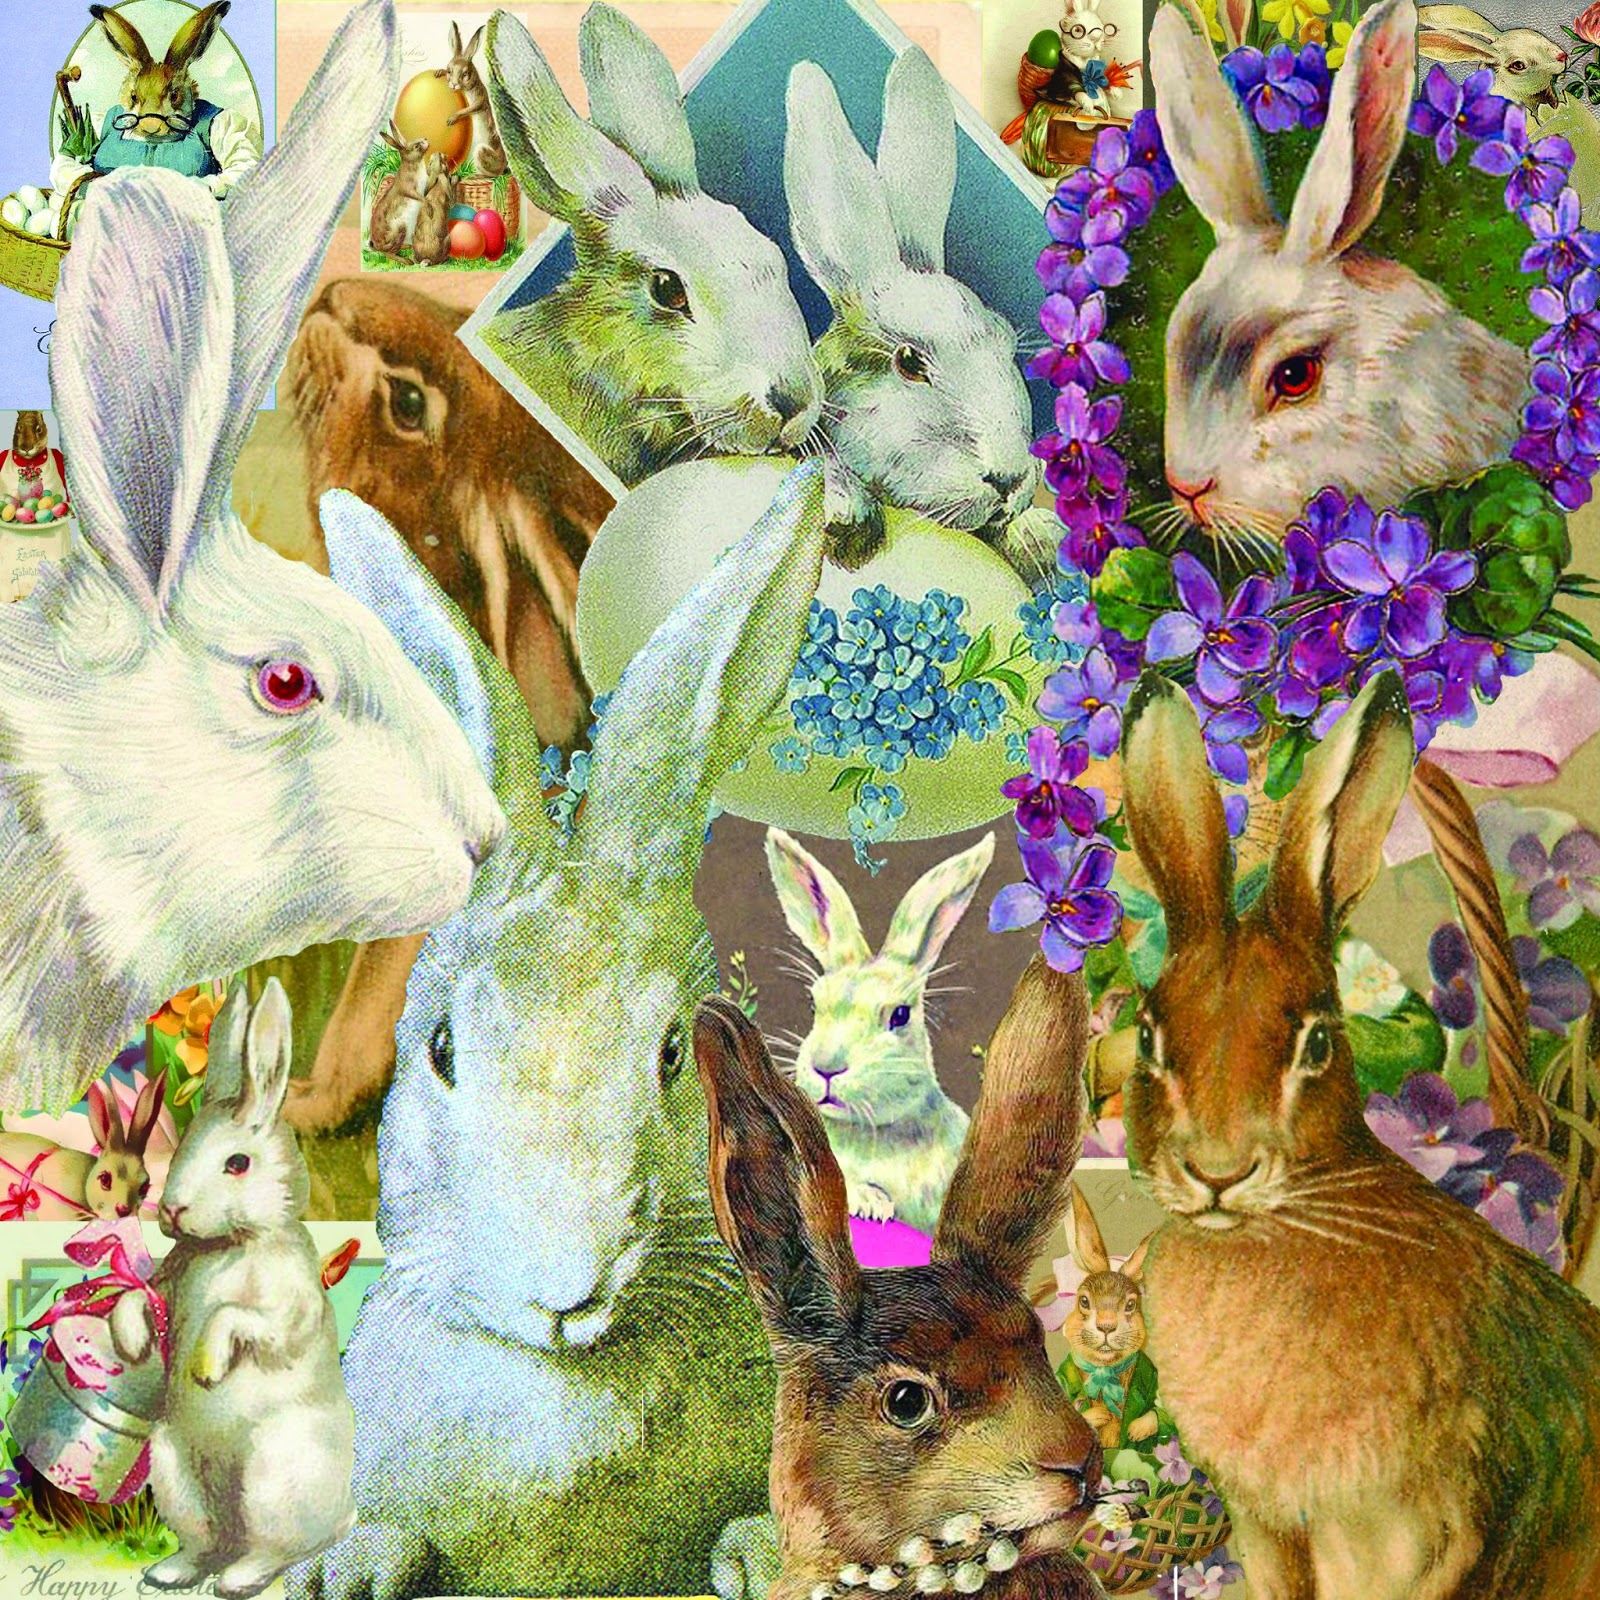 The Artzee Blog: 12 X 12 Inch Vintage Easter Bunny Collage